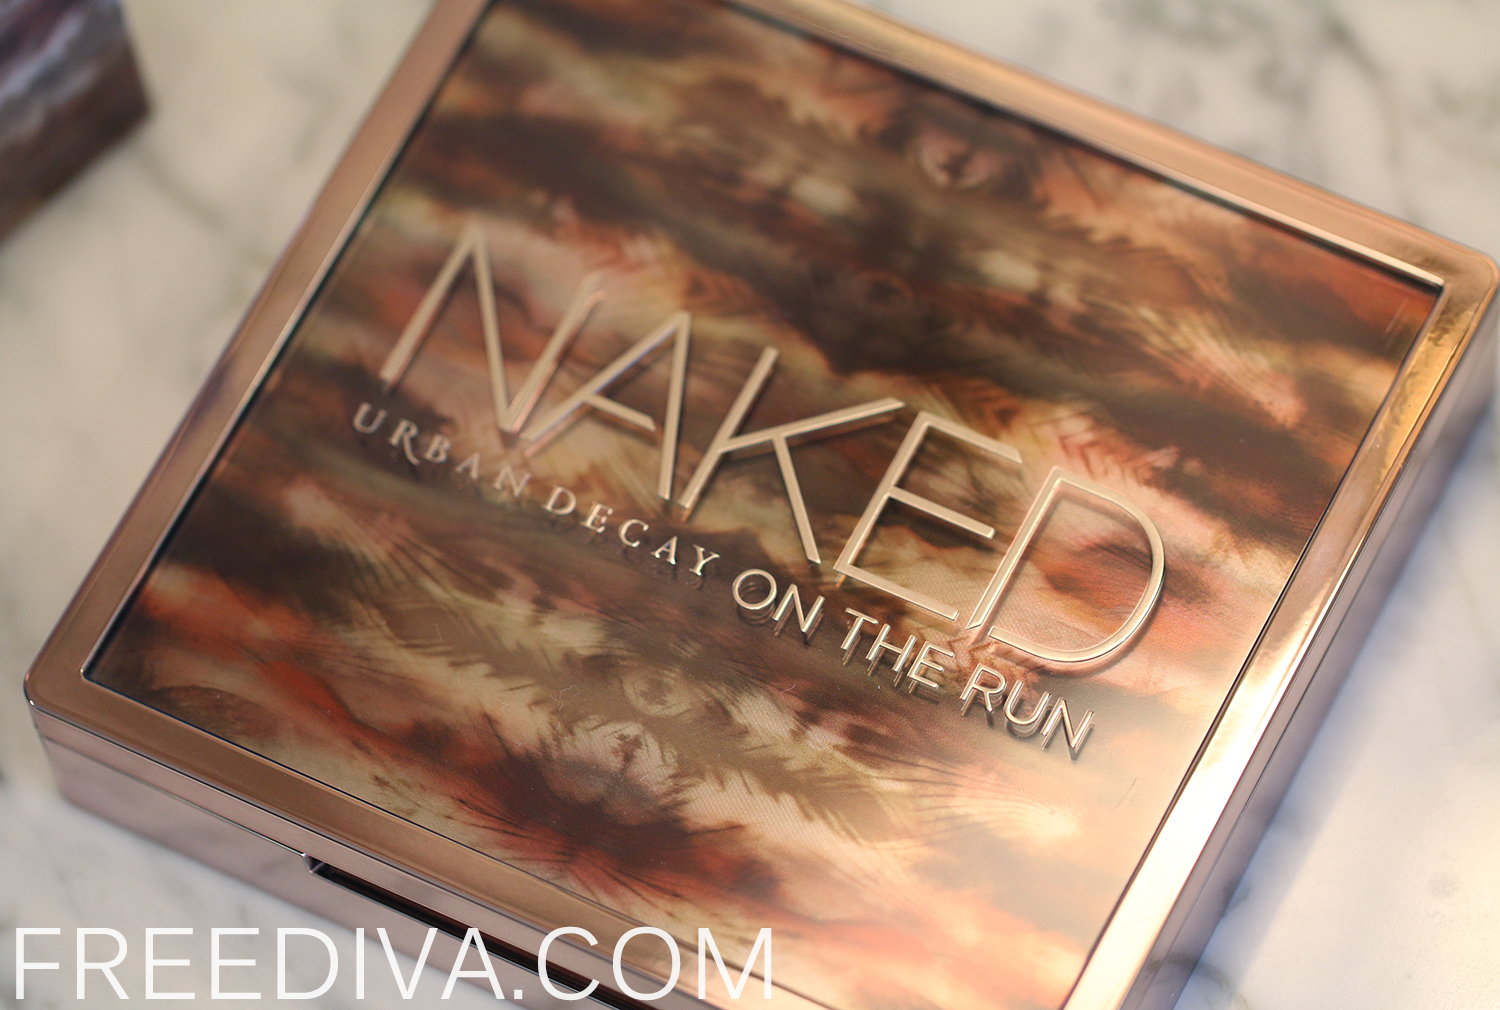 Urban Decay, Naked on the Run Palette